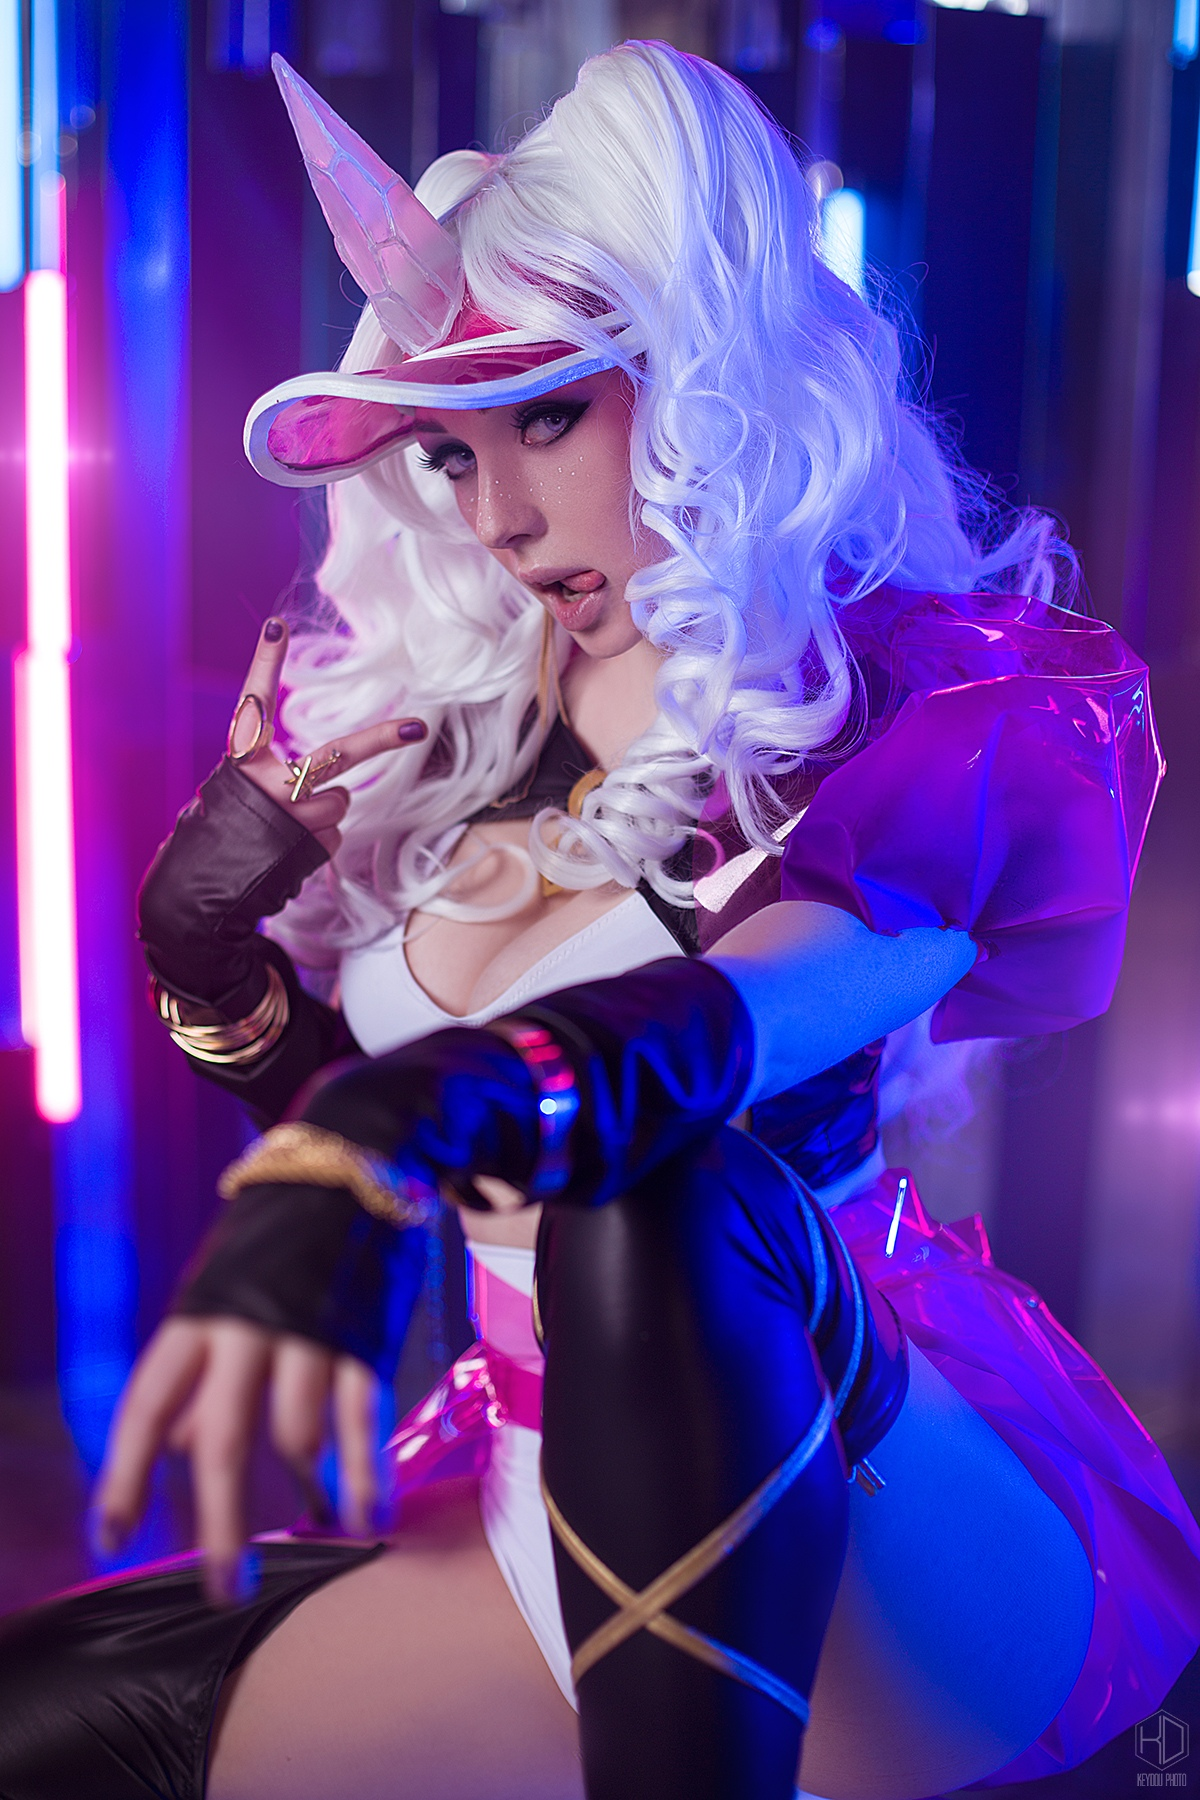 Kate Smirnova – KDA Soraka – League of Legends 5